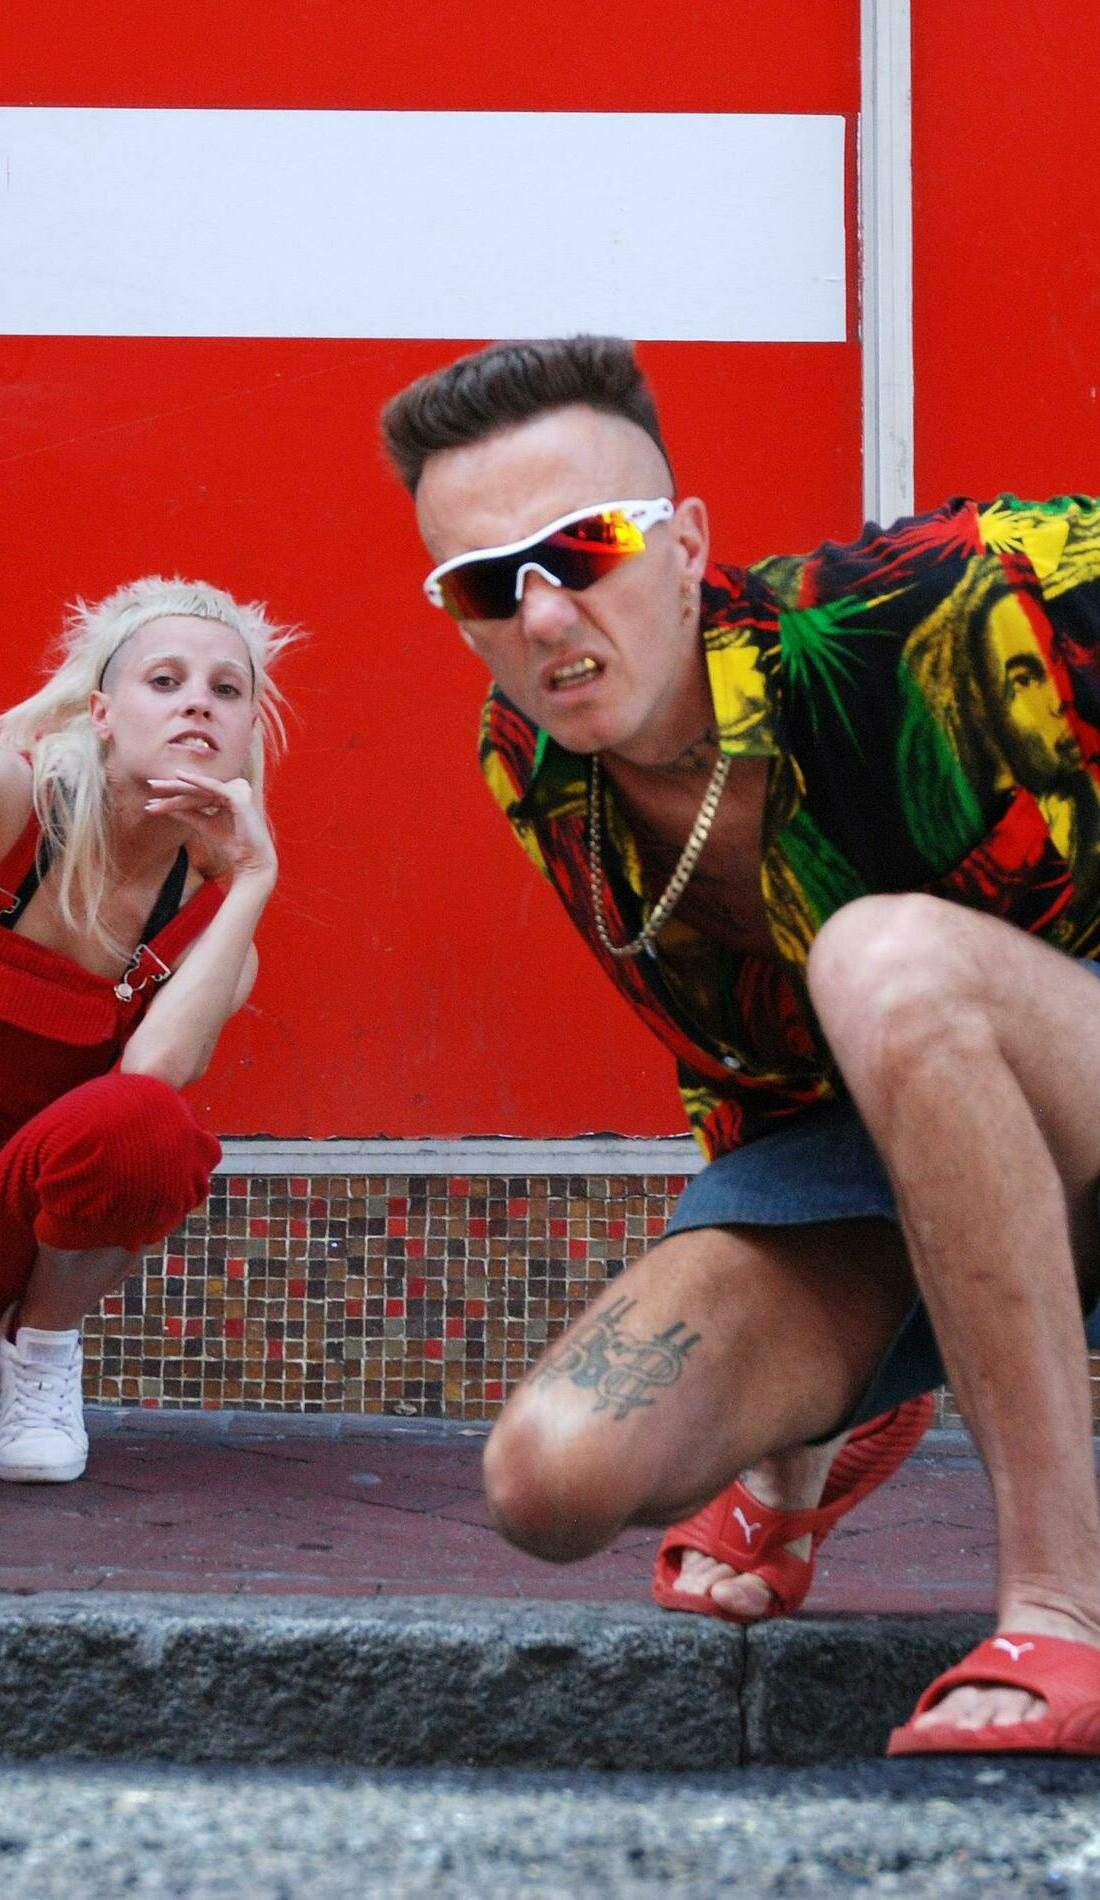 A Die Antwoord live event